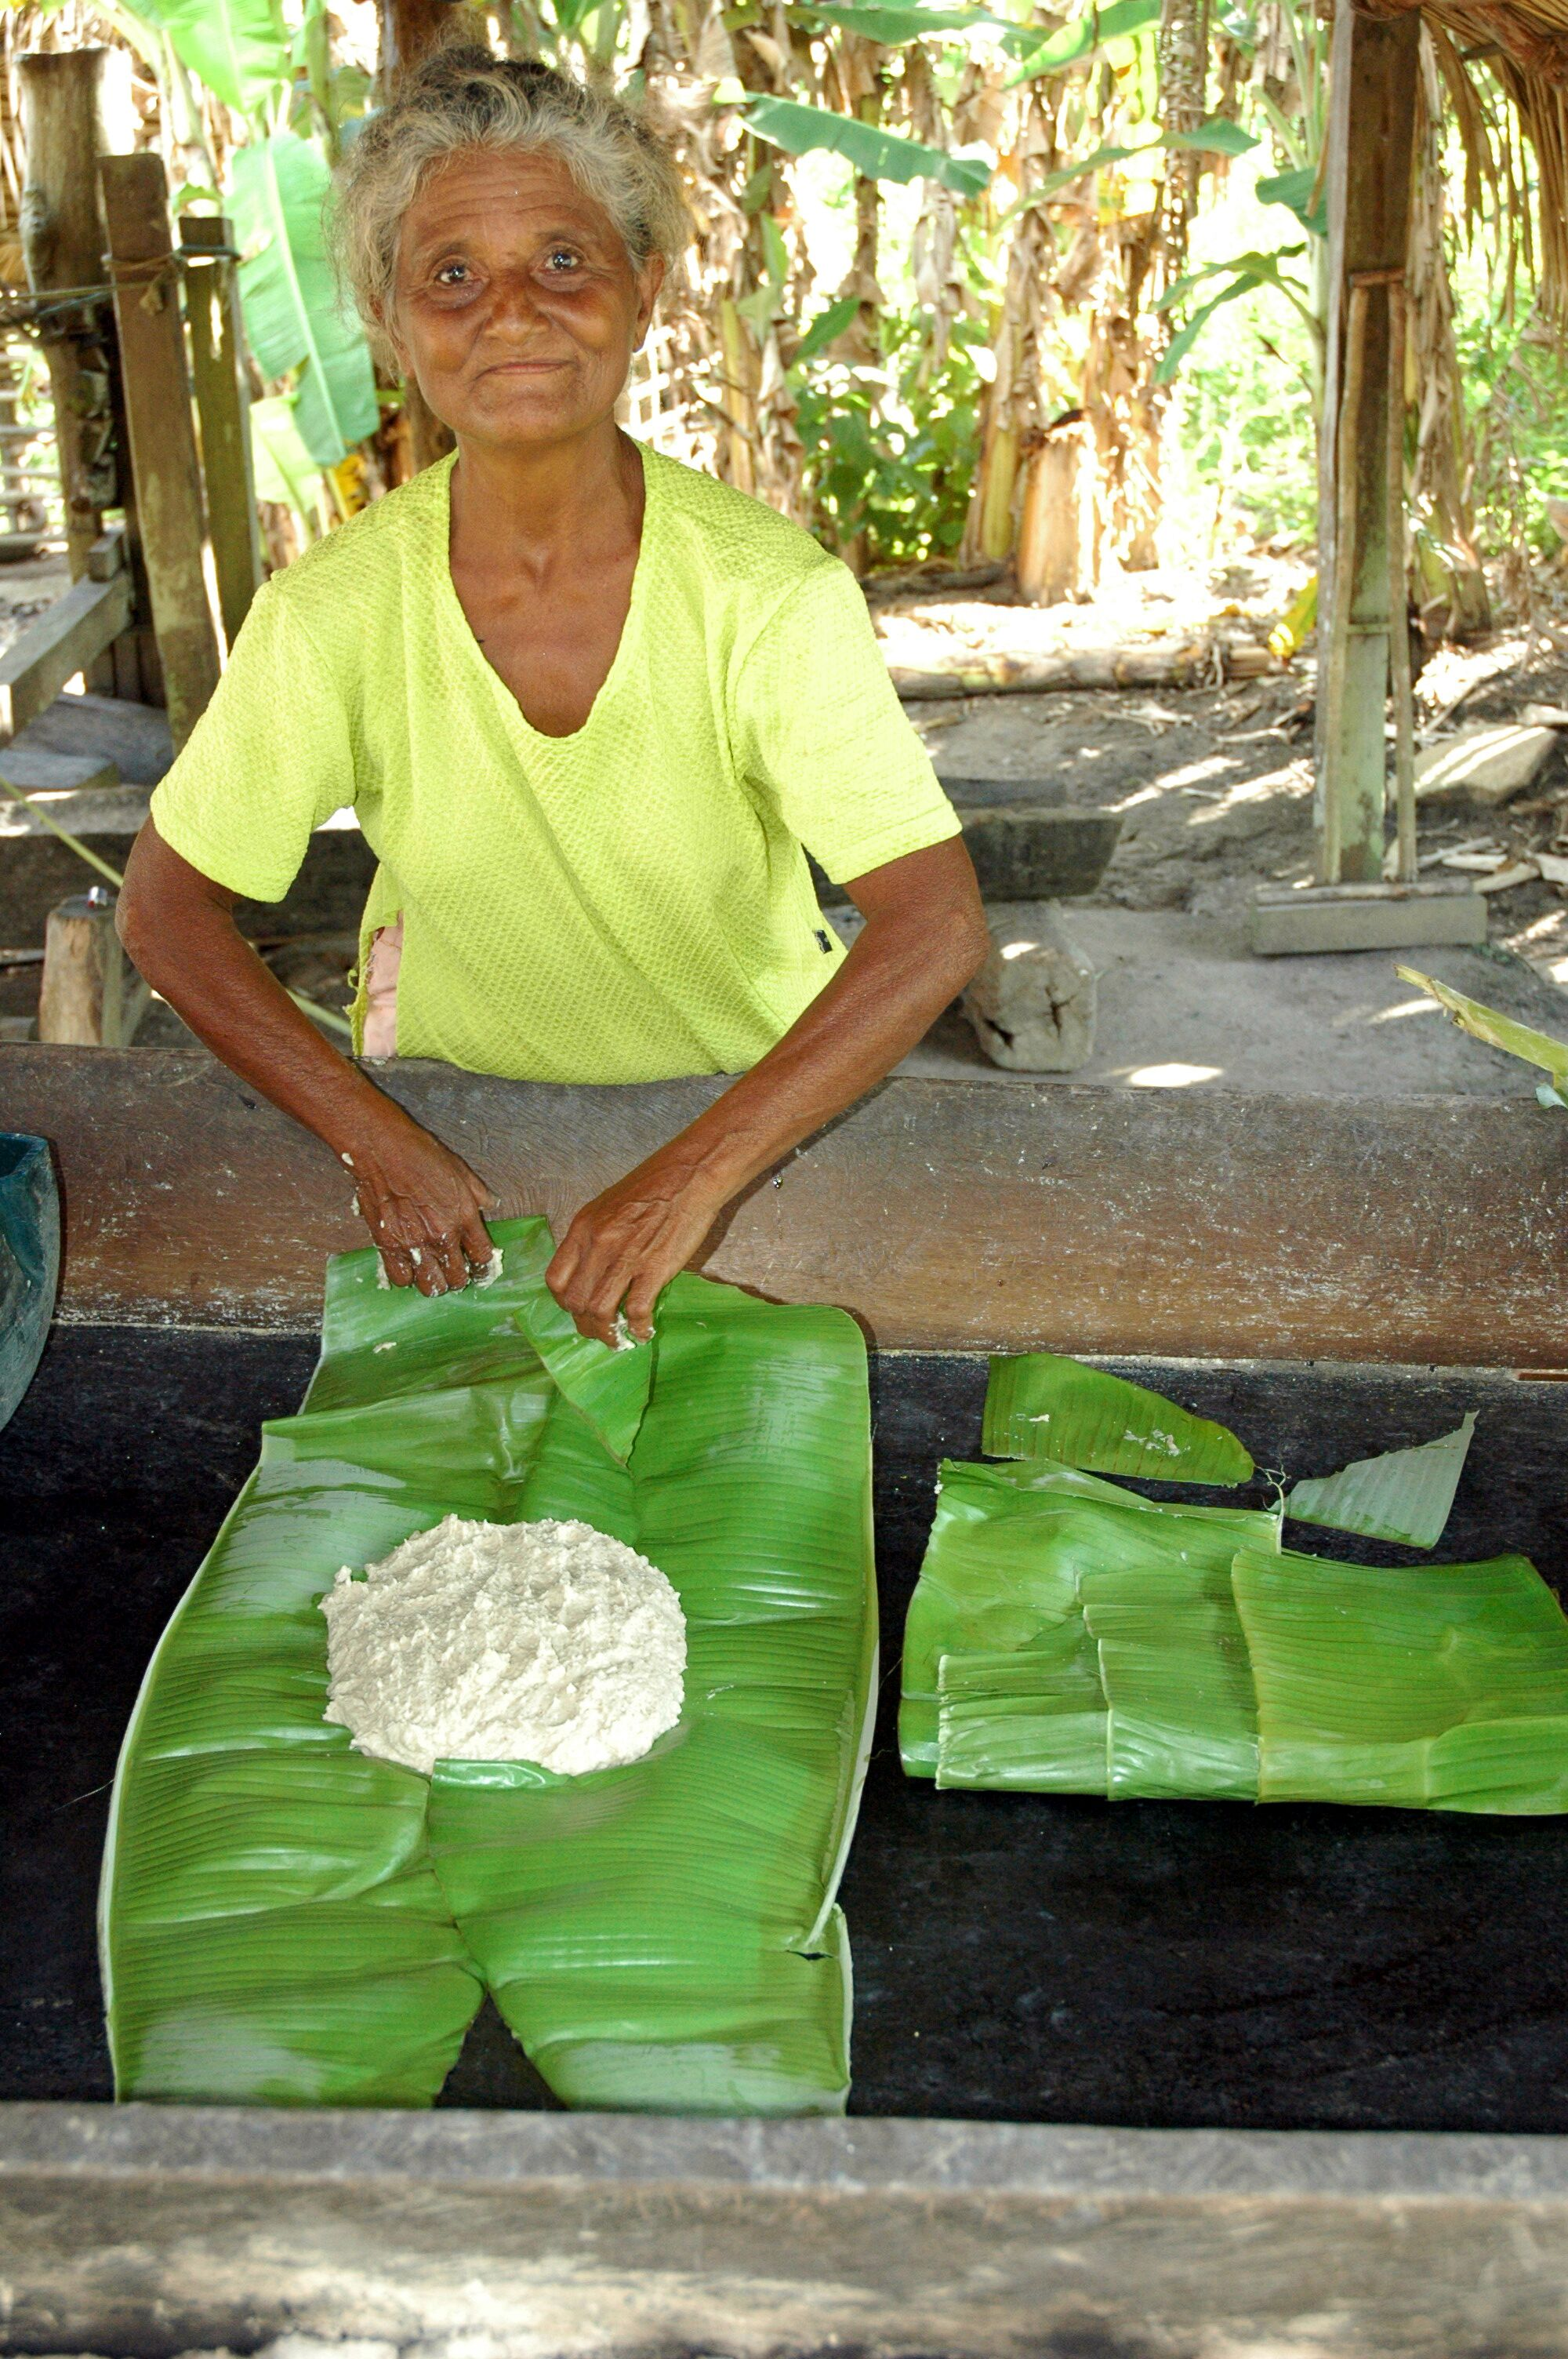 Dona Lausminda de Jesus, from the Tapajós river community of Montanha e Mangabal, making a cake. Traditional river settlements and indigenous villages throughout the Tapajós would be impacted by the waterway and dams, and by the subsequent deforestation brought by logging, mining, and agribusiness. Photo by Mauricio Torres